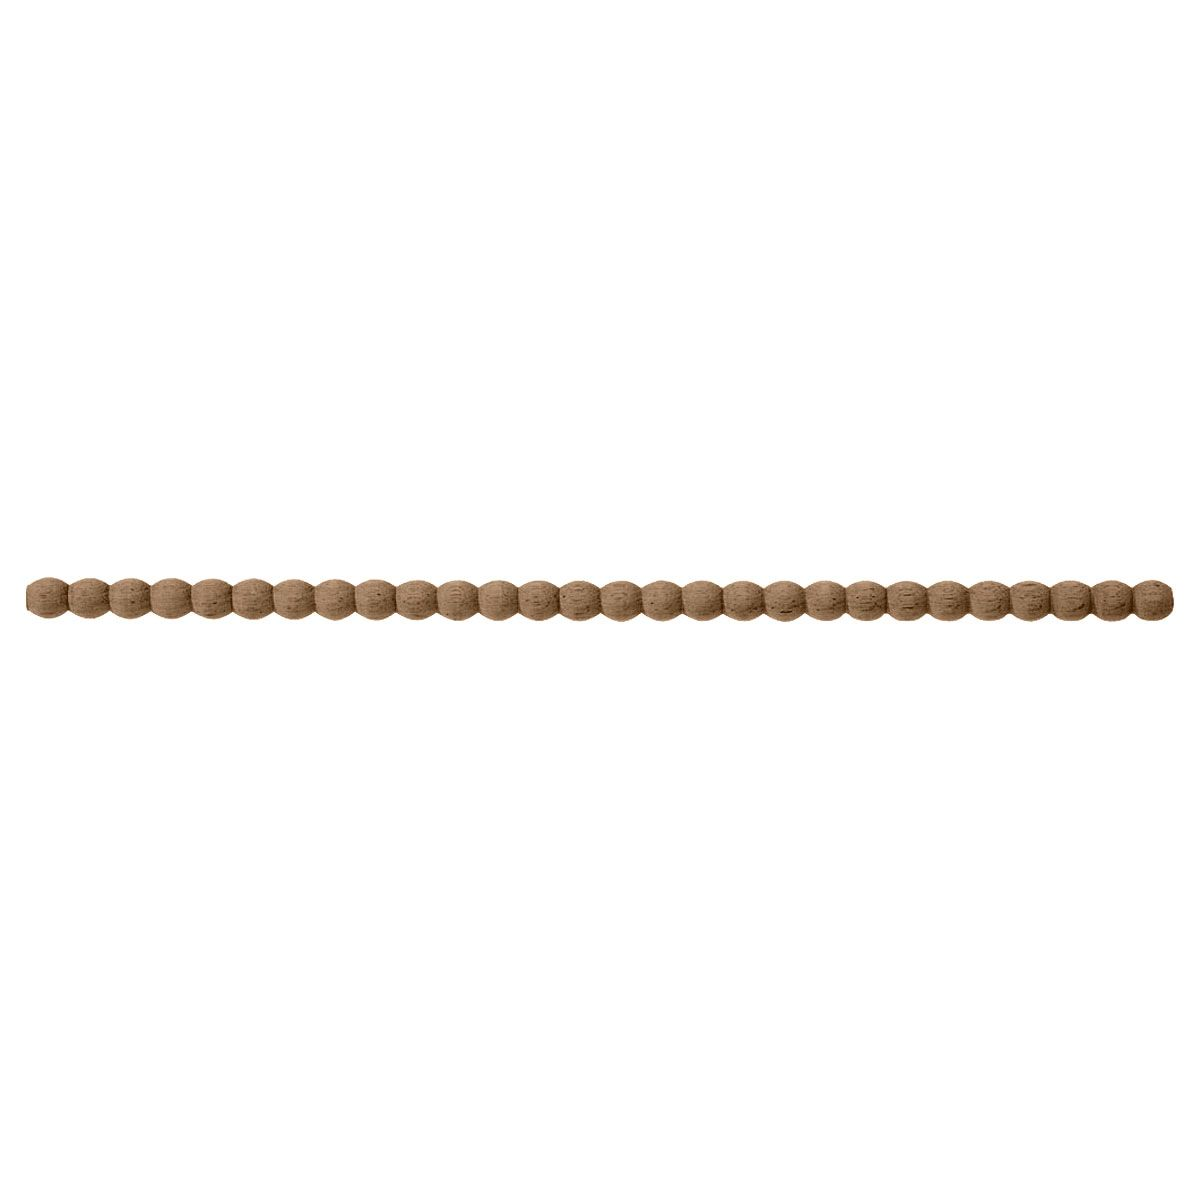 3 16 Inch D Half Round Pearl Beading Moulding 3 Stick Beech Pearl Beads Wood Beads Wood Mouldings